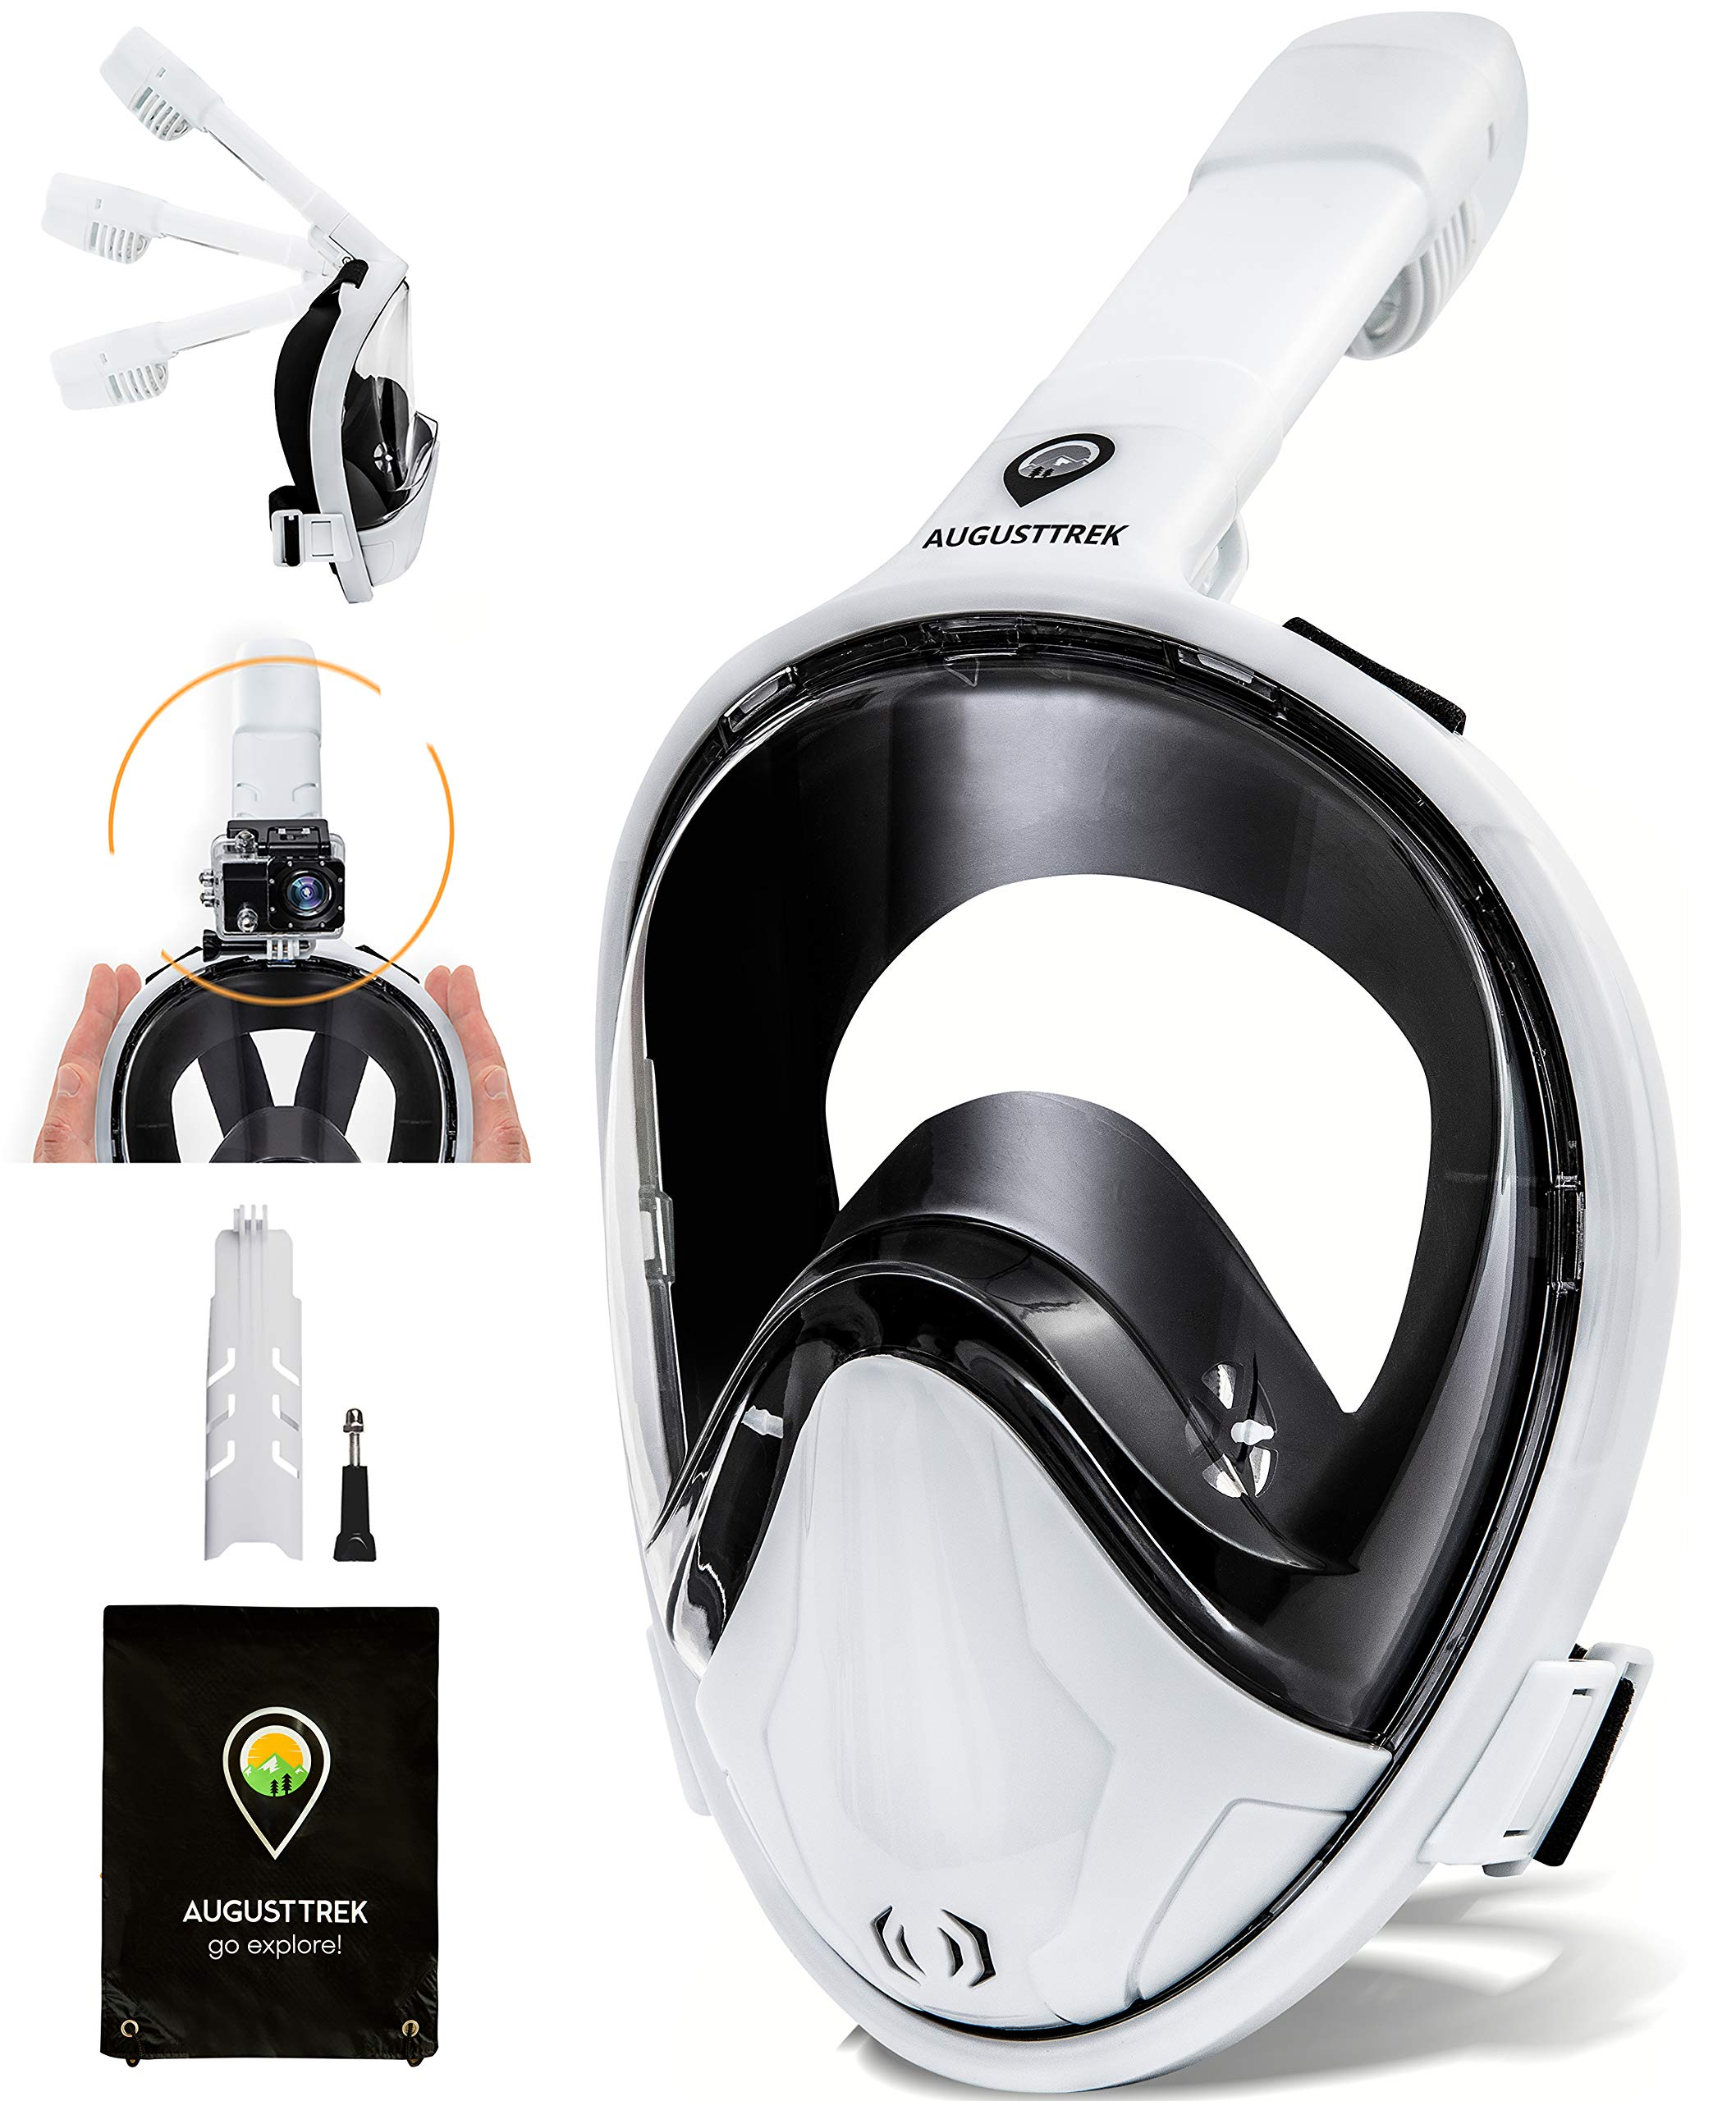 AugustTrek ONE80 GoPro Compatible Snorkel Mask - Full Face Design, Foldable Tube and Upgraded Wide 180° Lens, Largest in Market. Breathe Comfortably with Enhanced Easy Breathing Technology. by AugustTrek